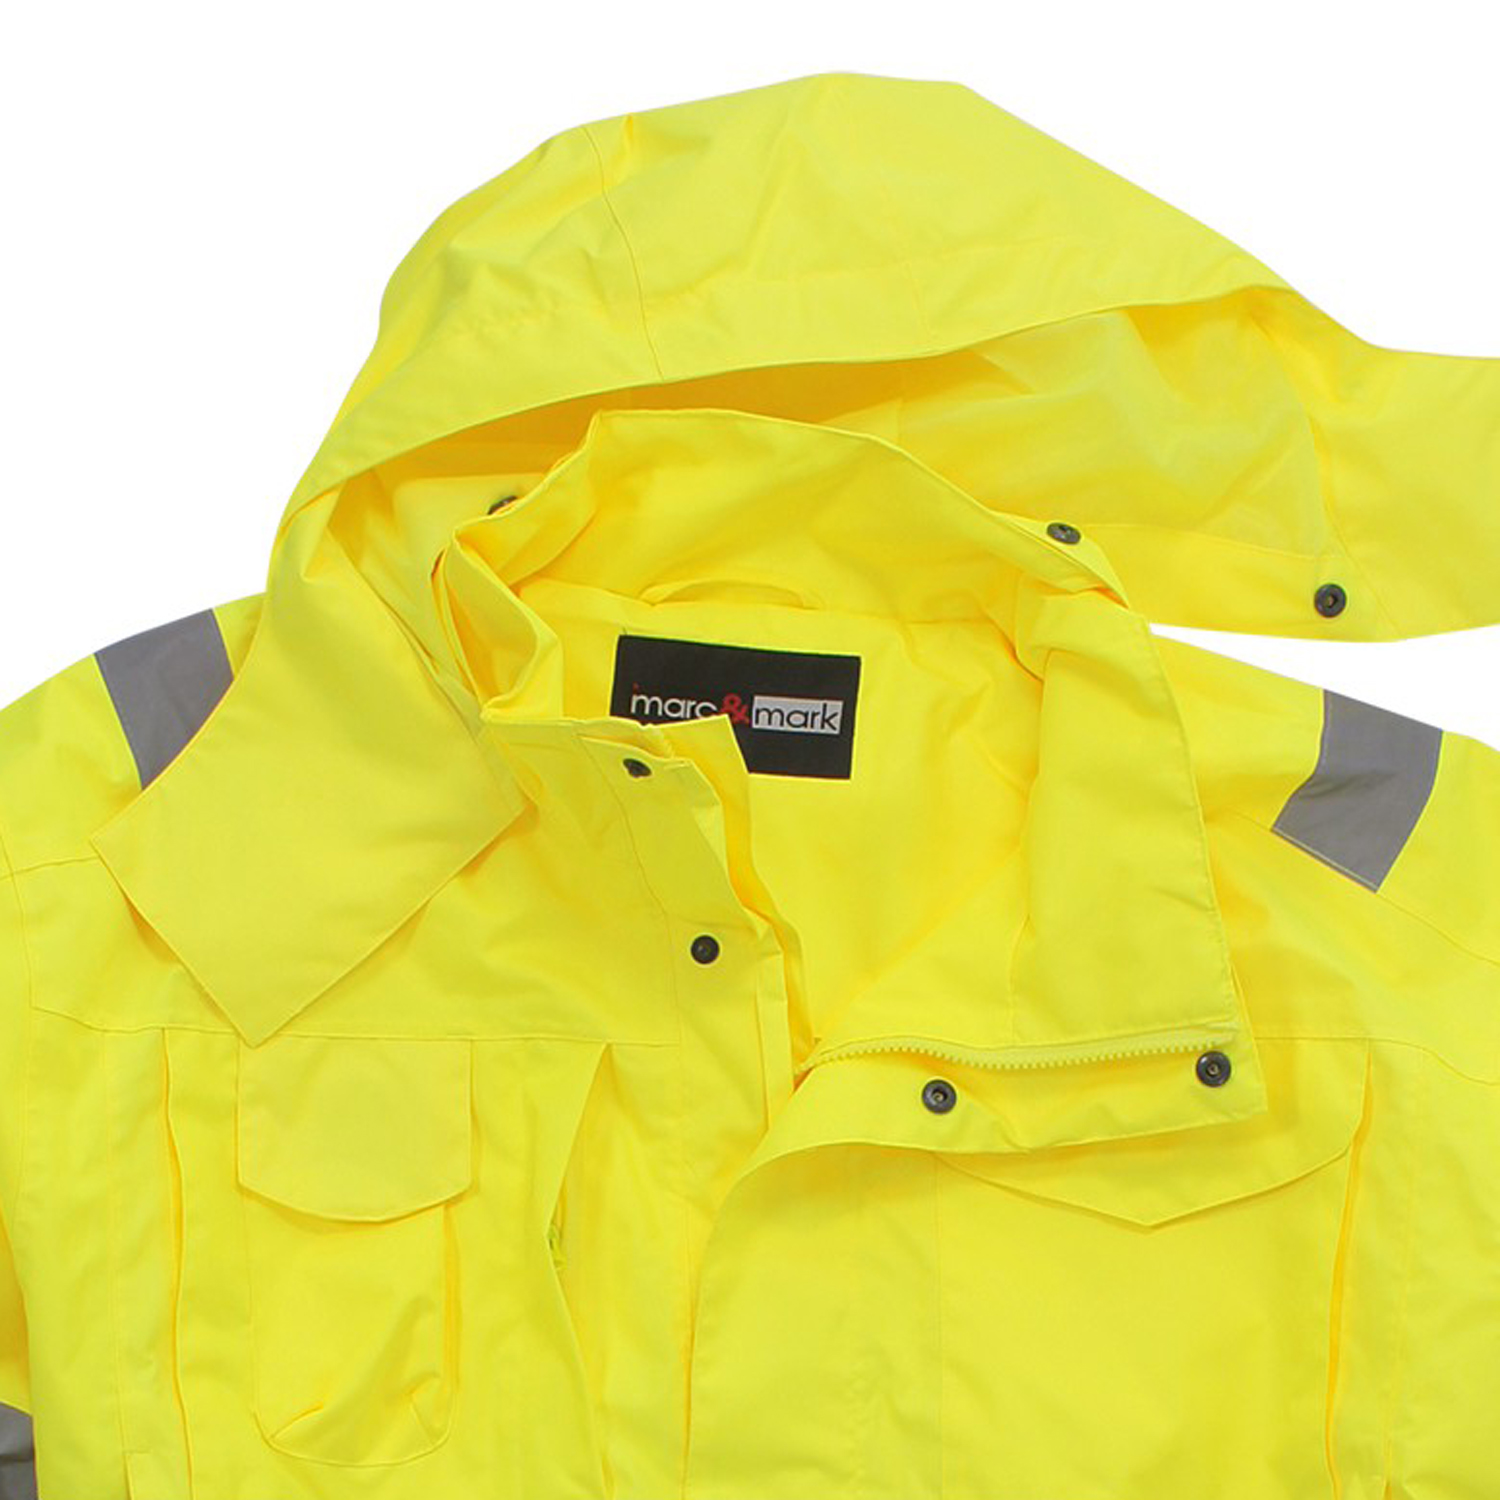 Detail Image to Waterproof warning jacket in yellow by marc&mark in oversizes up to 10XL